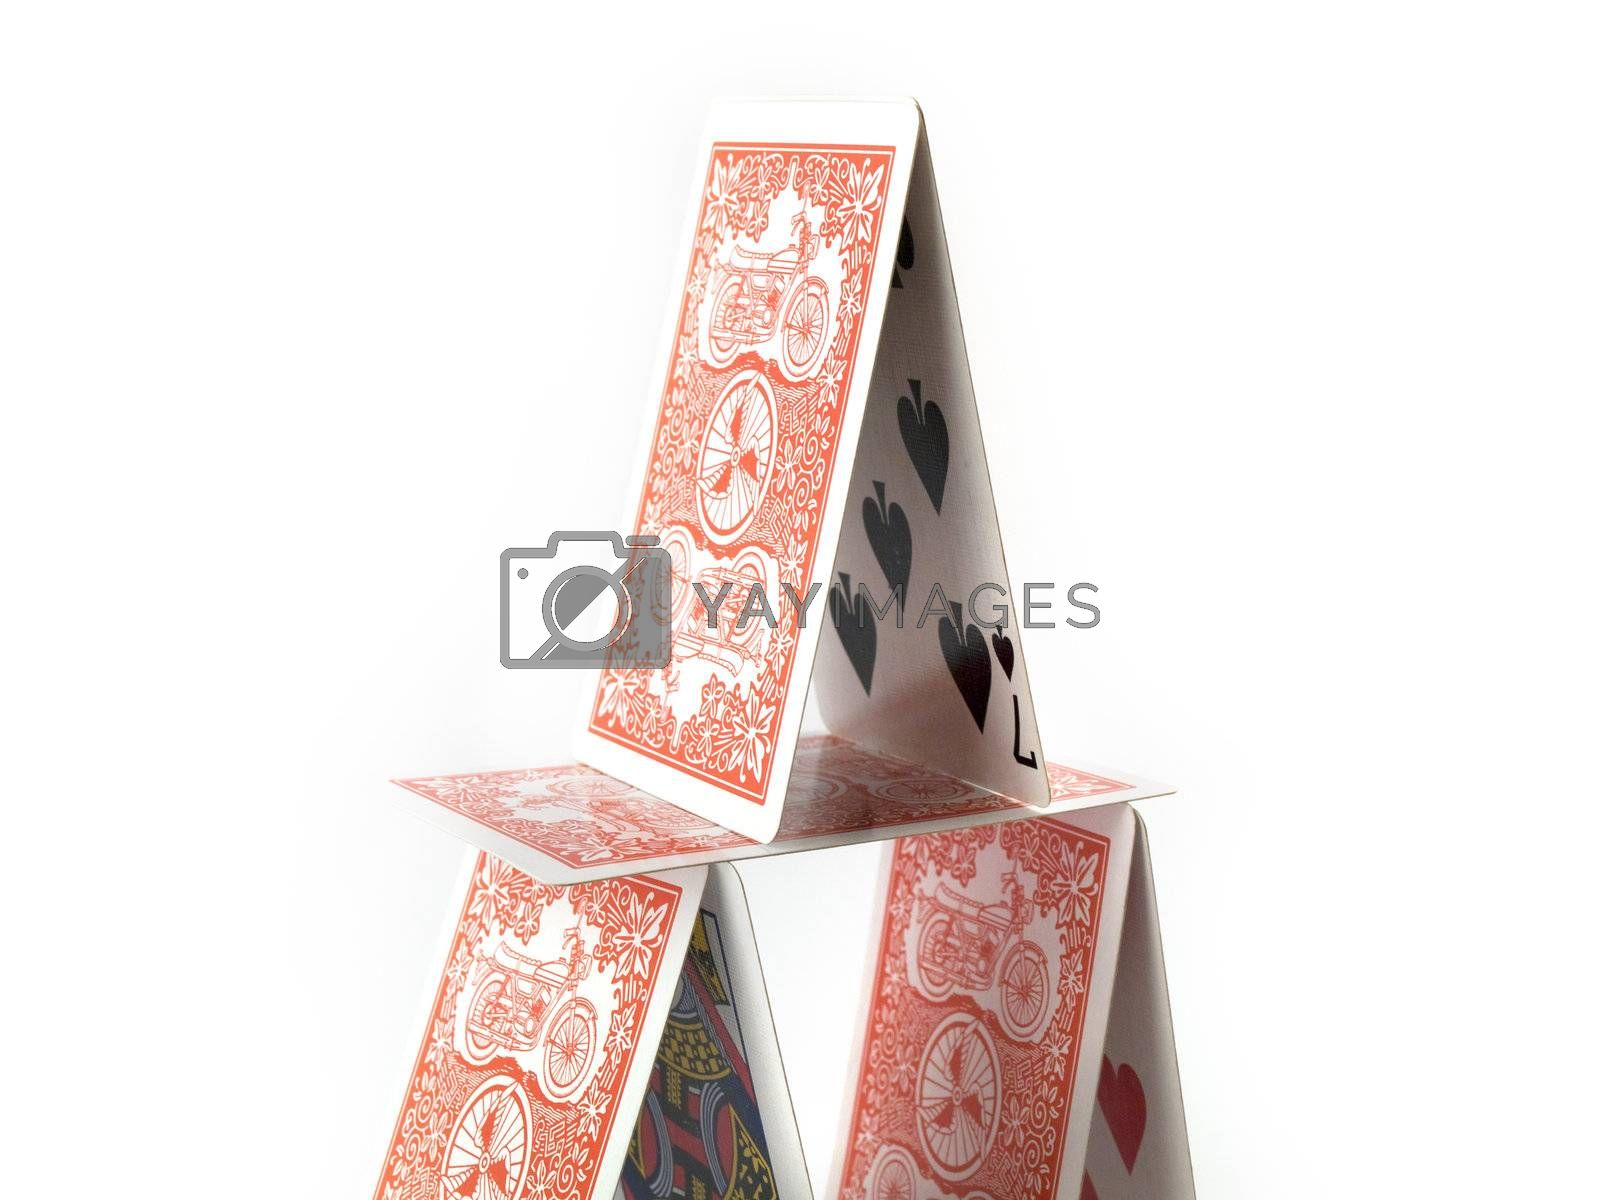 Balanced House of Cards on White Background